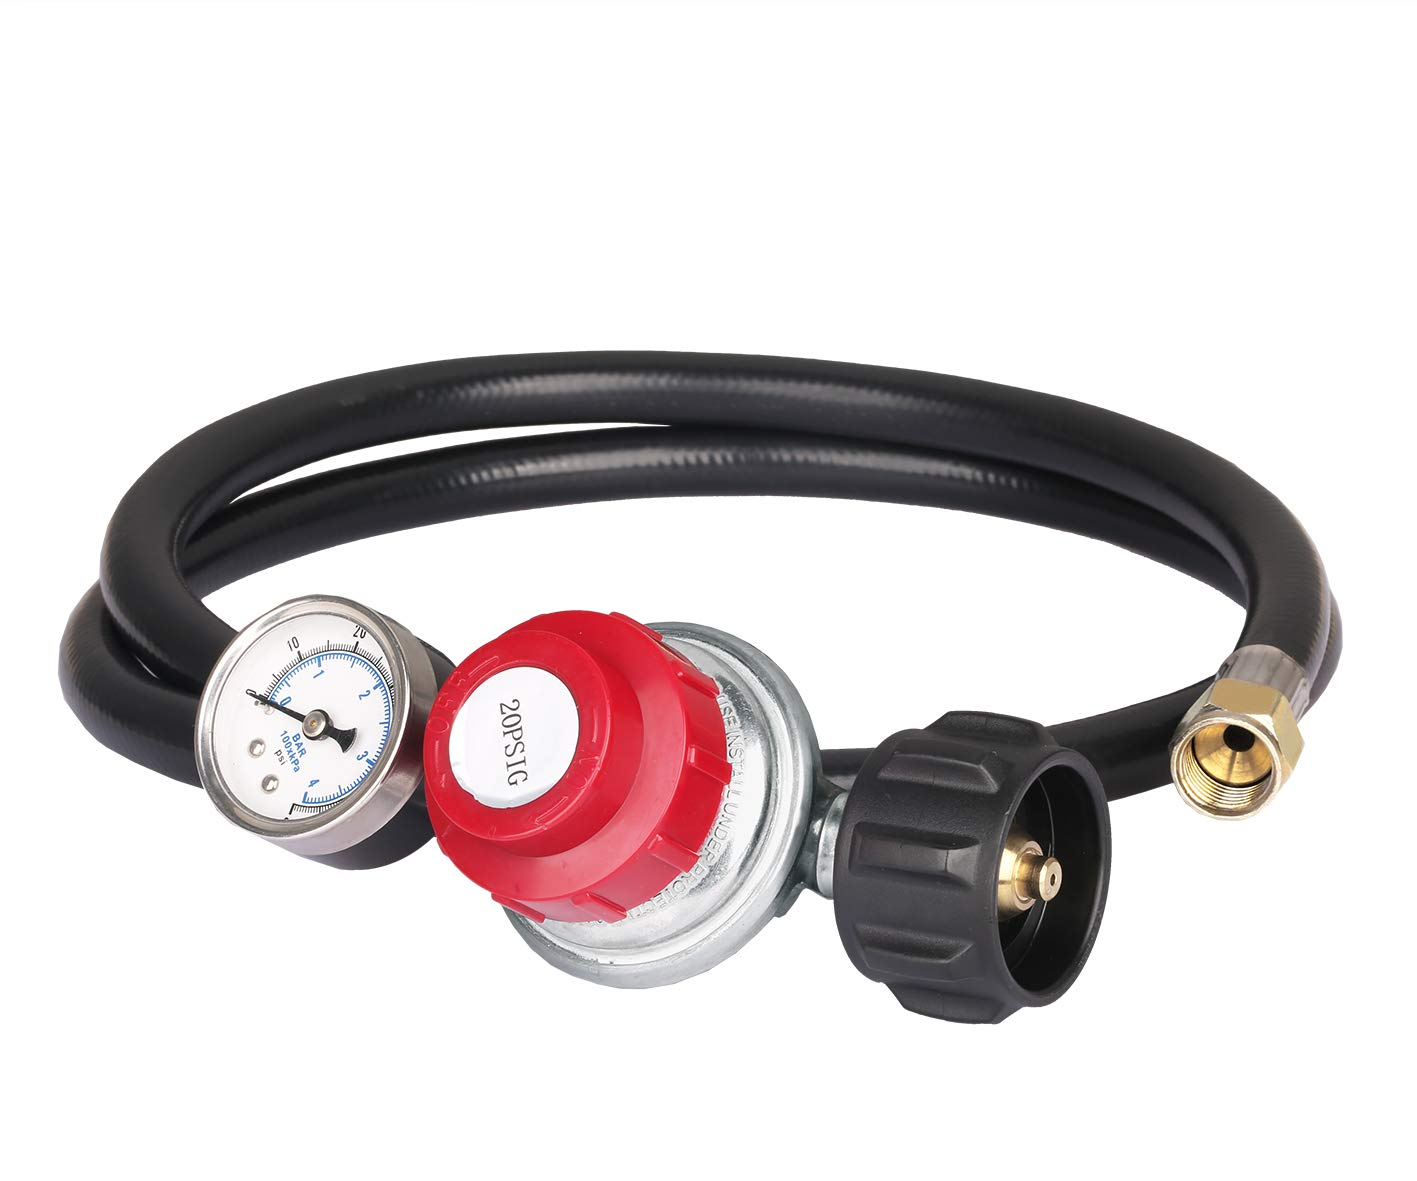 YPLF High Pressure Propane 0-20 PSI Adjustable Regulator with 4FT Hose-Type1 (QCC1) and 3/8'' Female Flare Swivel Fitting by YPLF